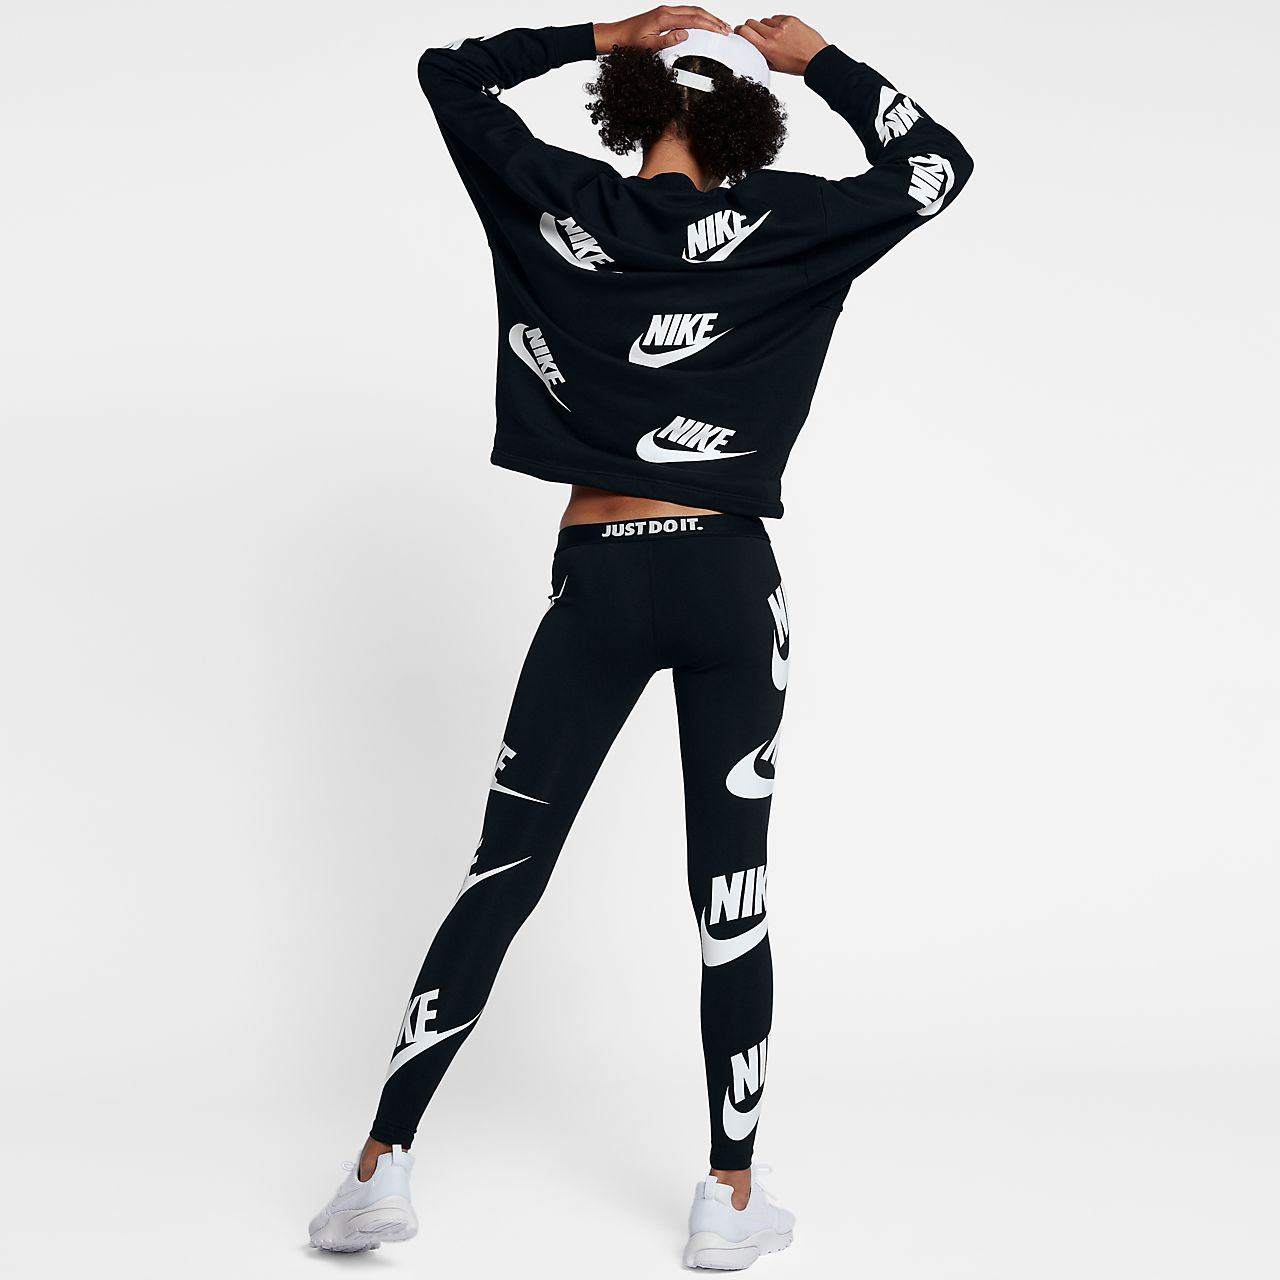 nike sportswear leg a see women 39 s graphic leggings. Black Bedroom Furniture Sets. Home Design Ideas